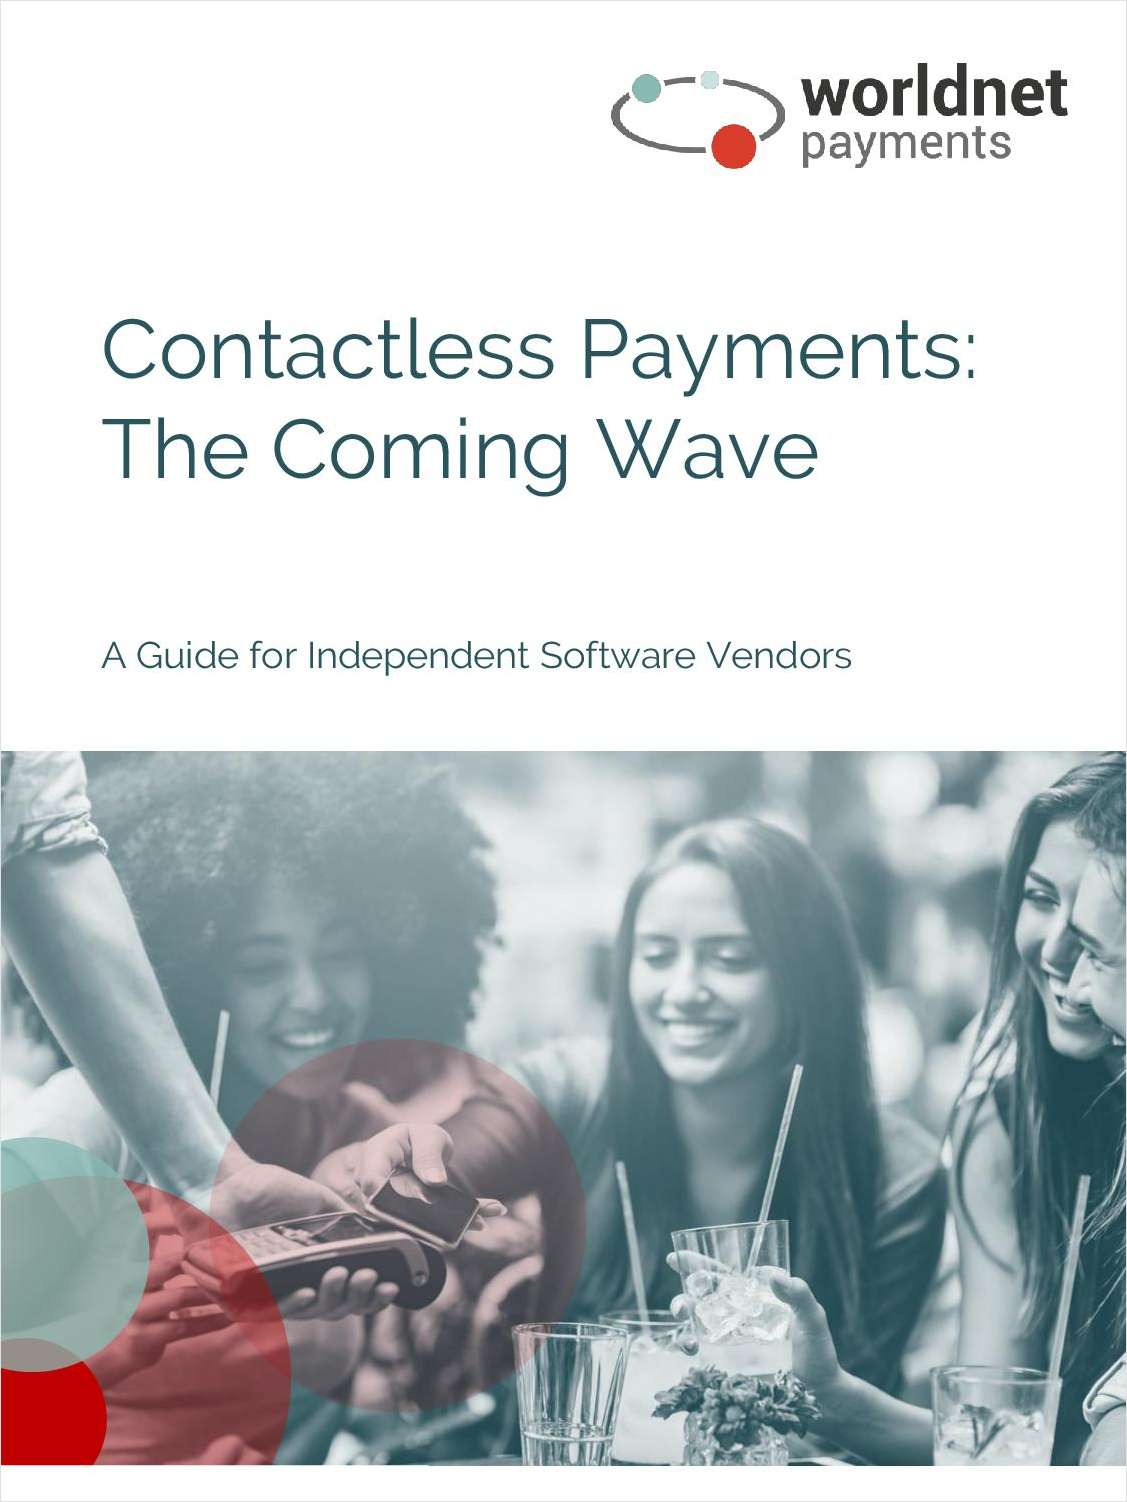 Contactless Payments are Coming